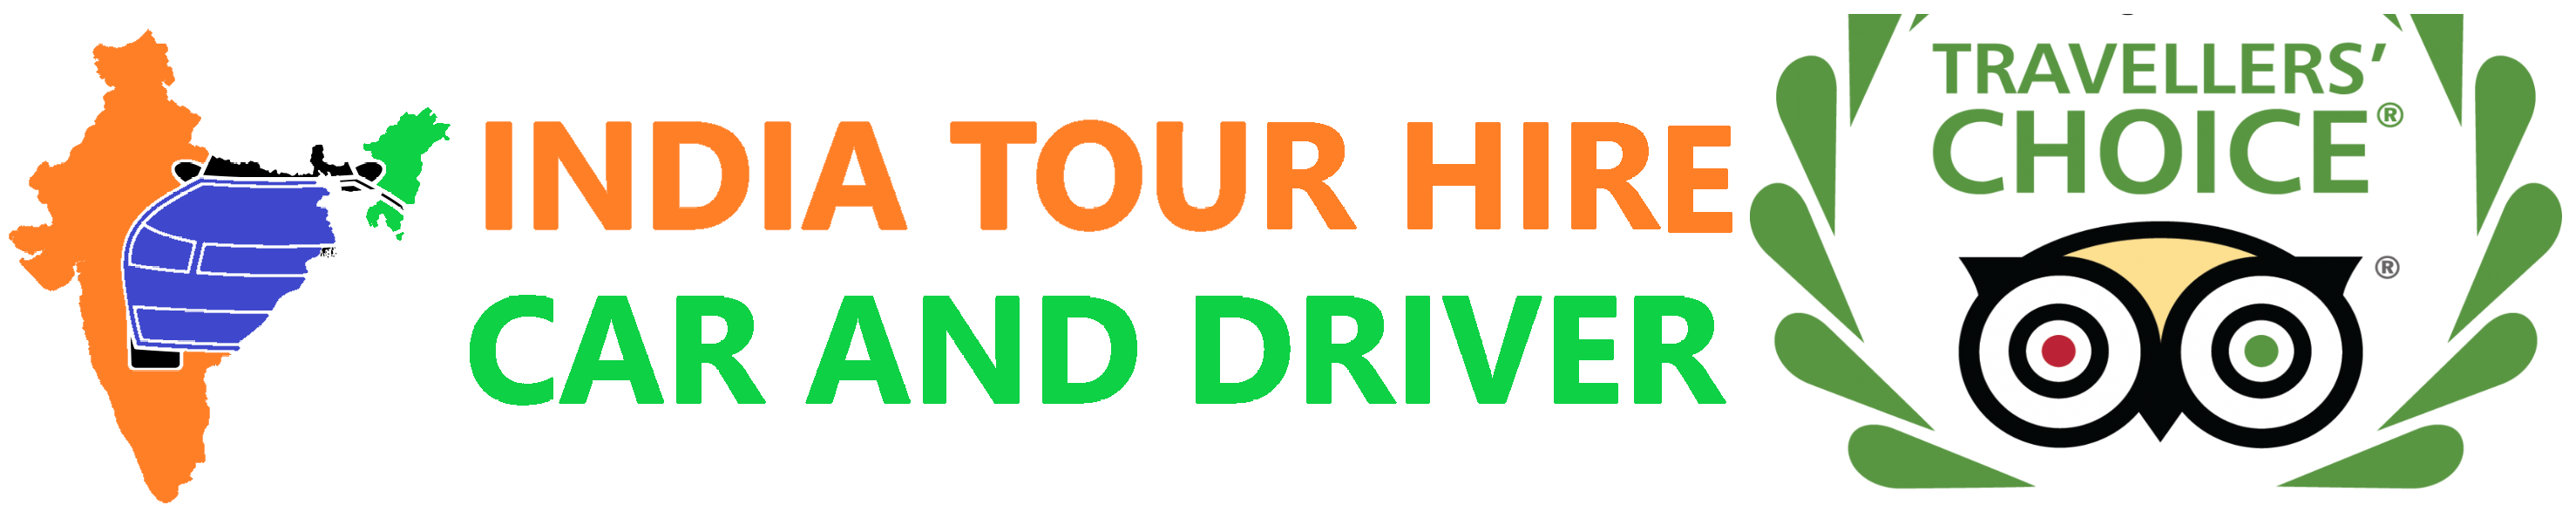 India Tour Hire Car & Driver Logo